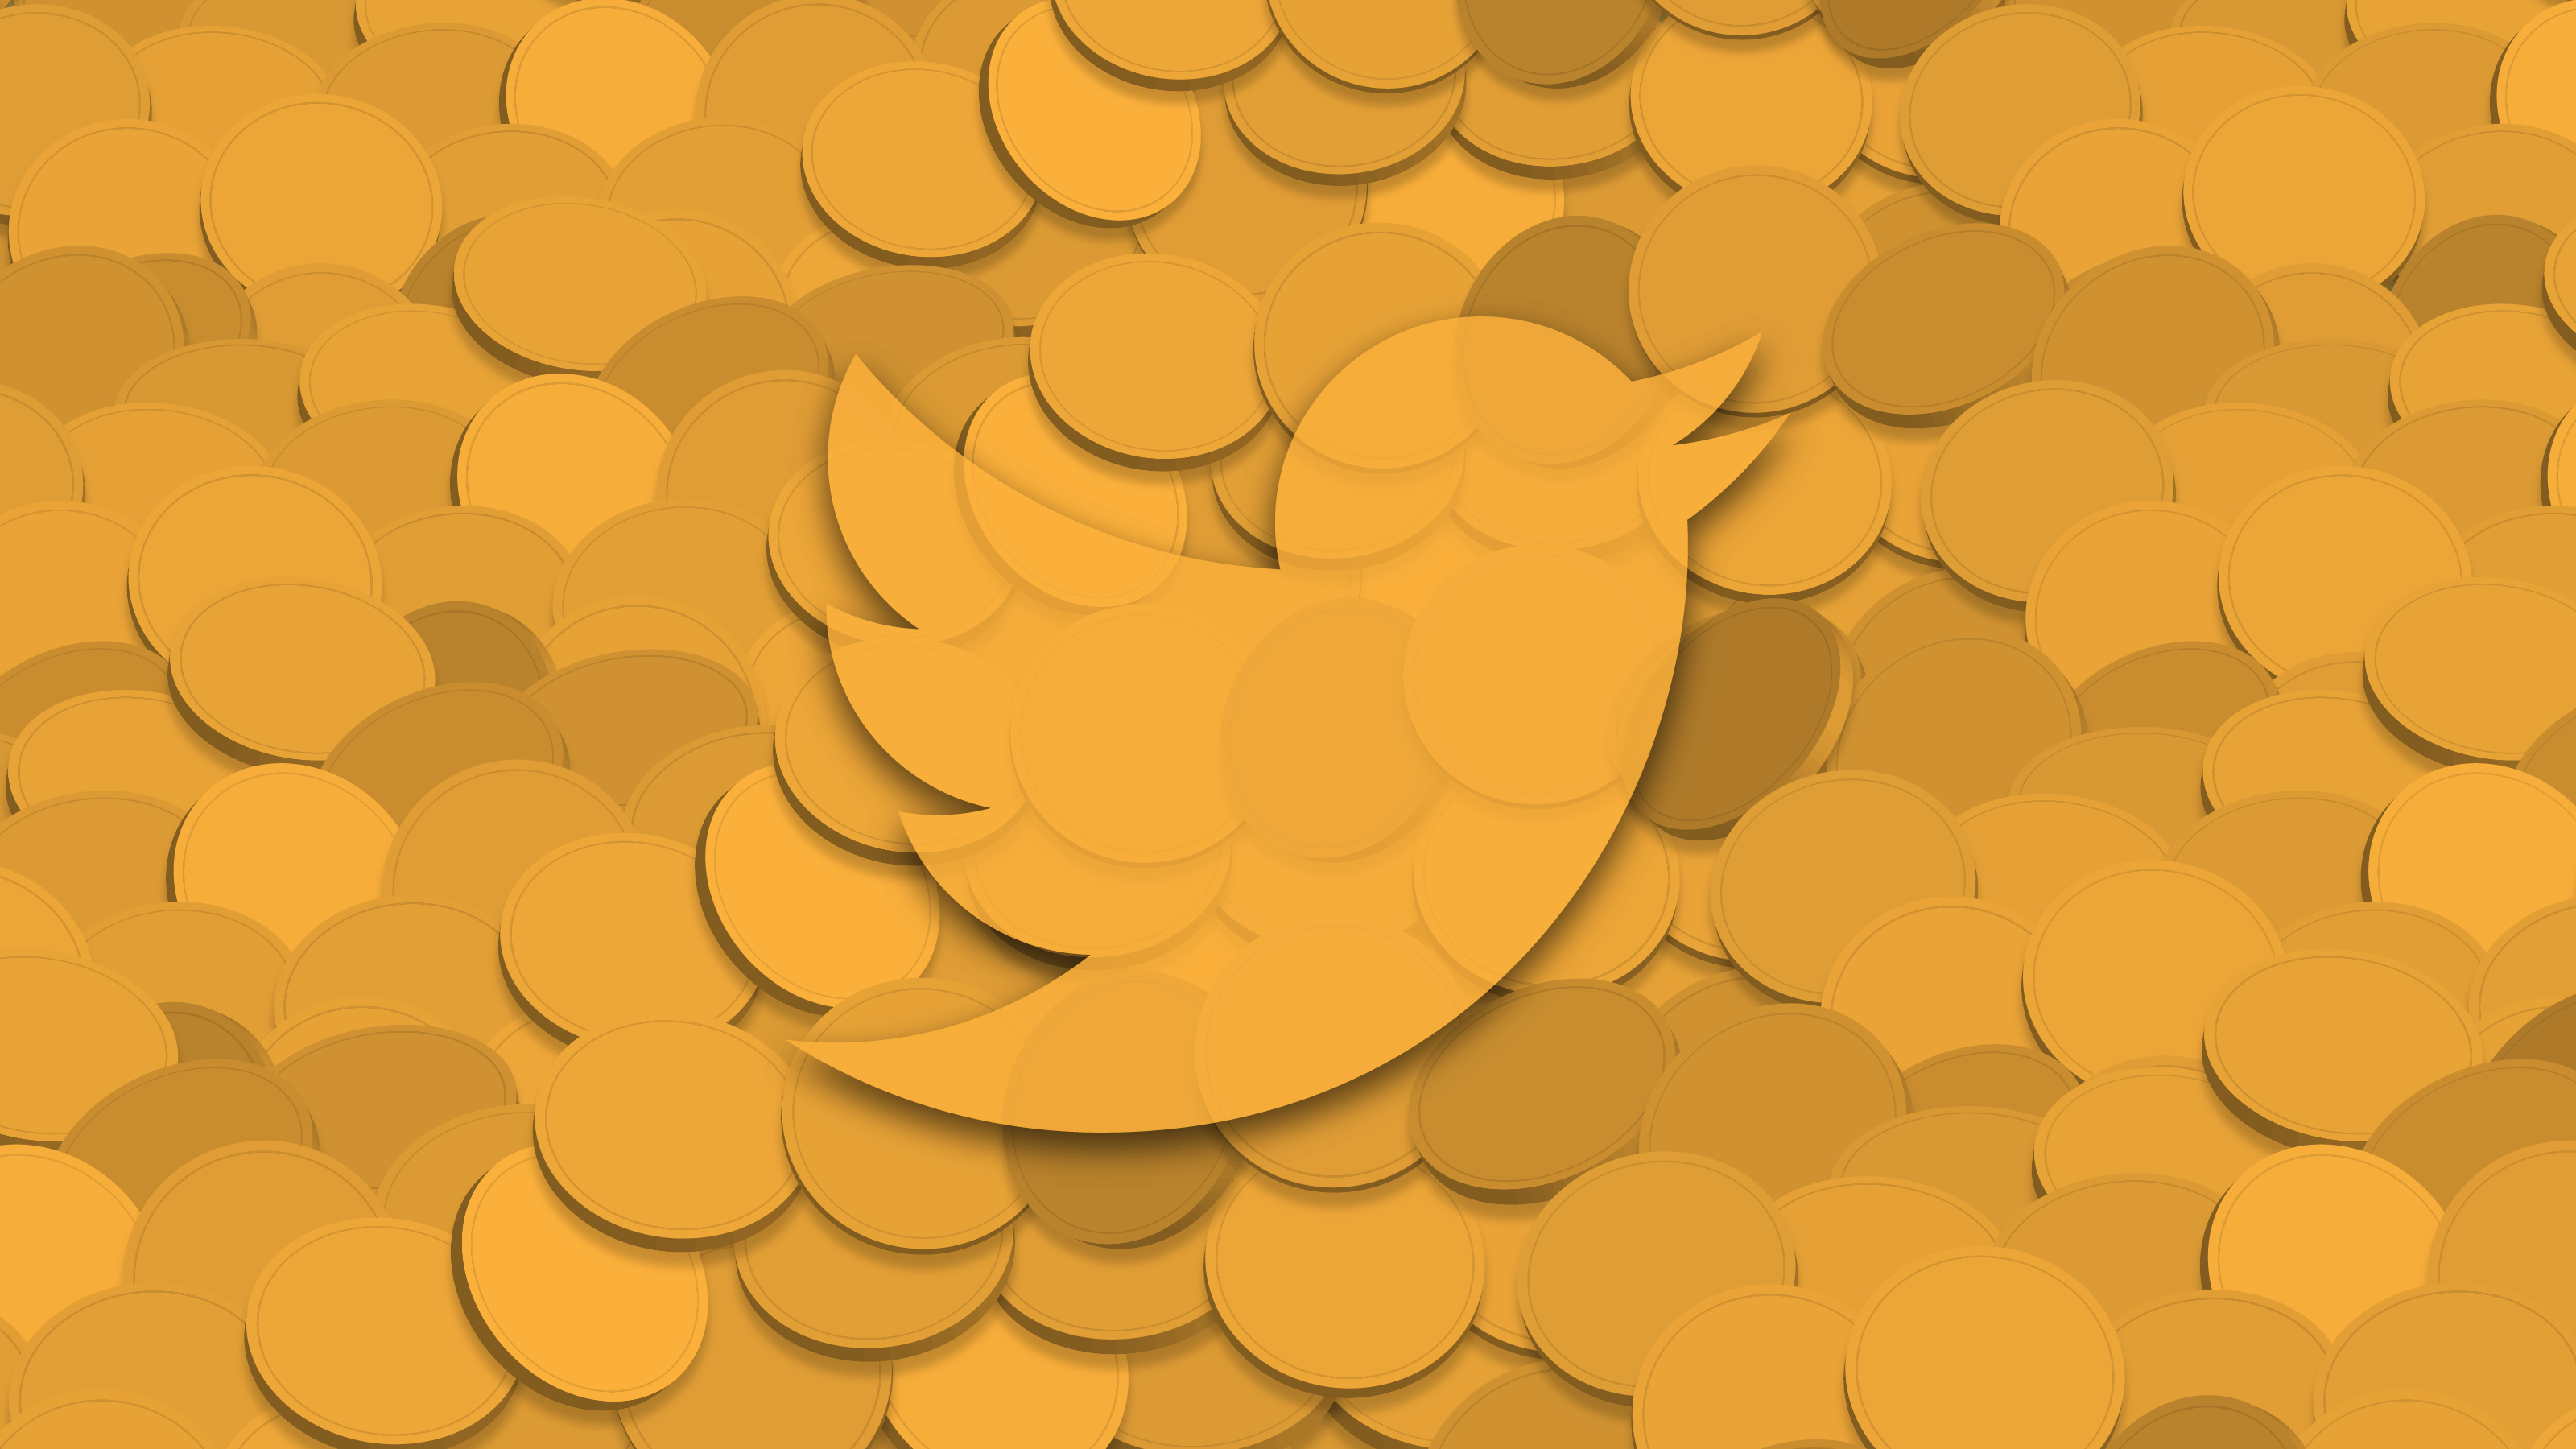 Twitter to ban cryptocurrency advertisements